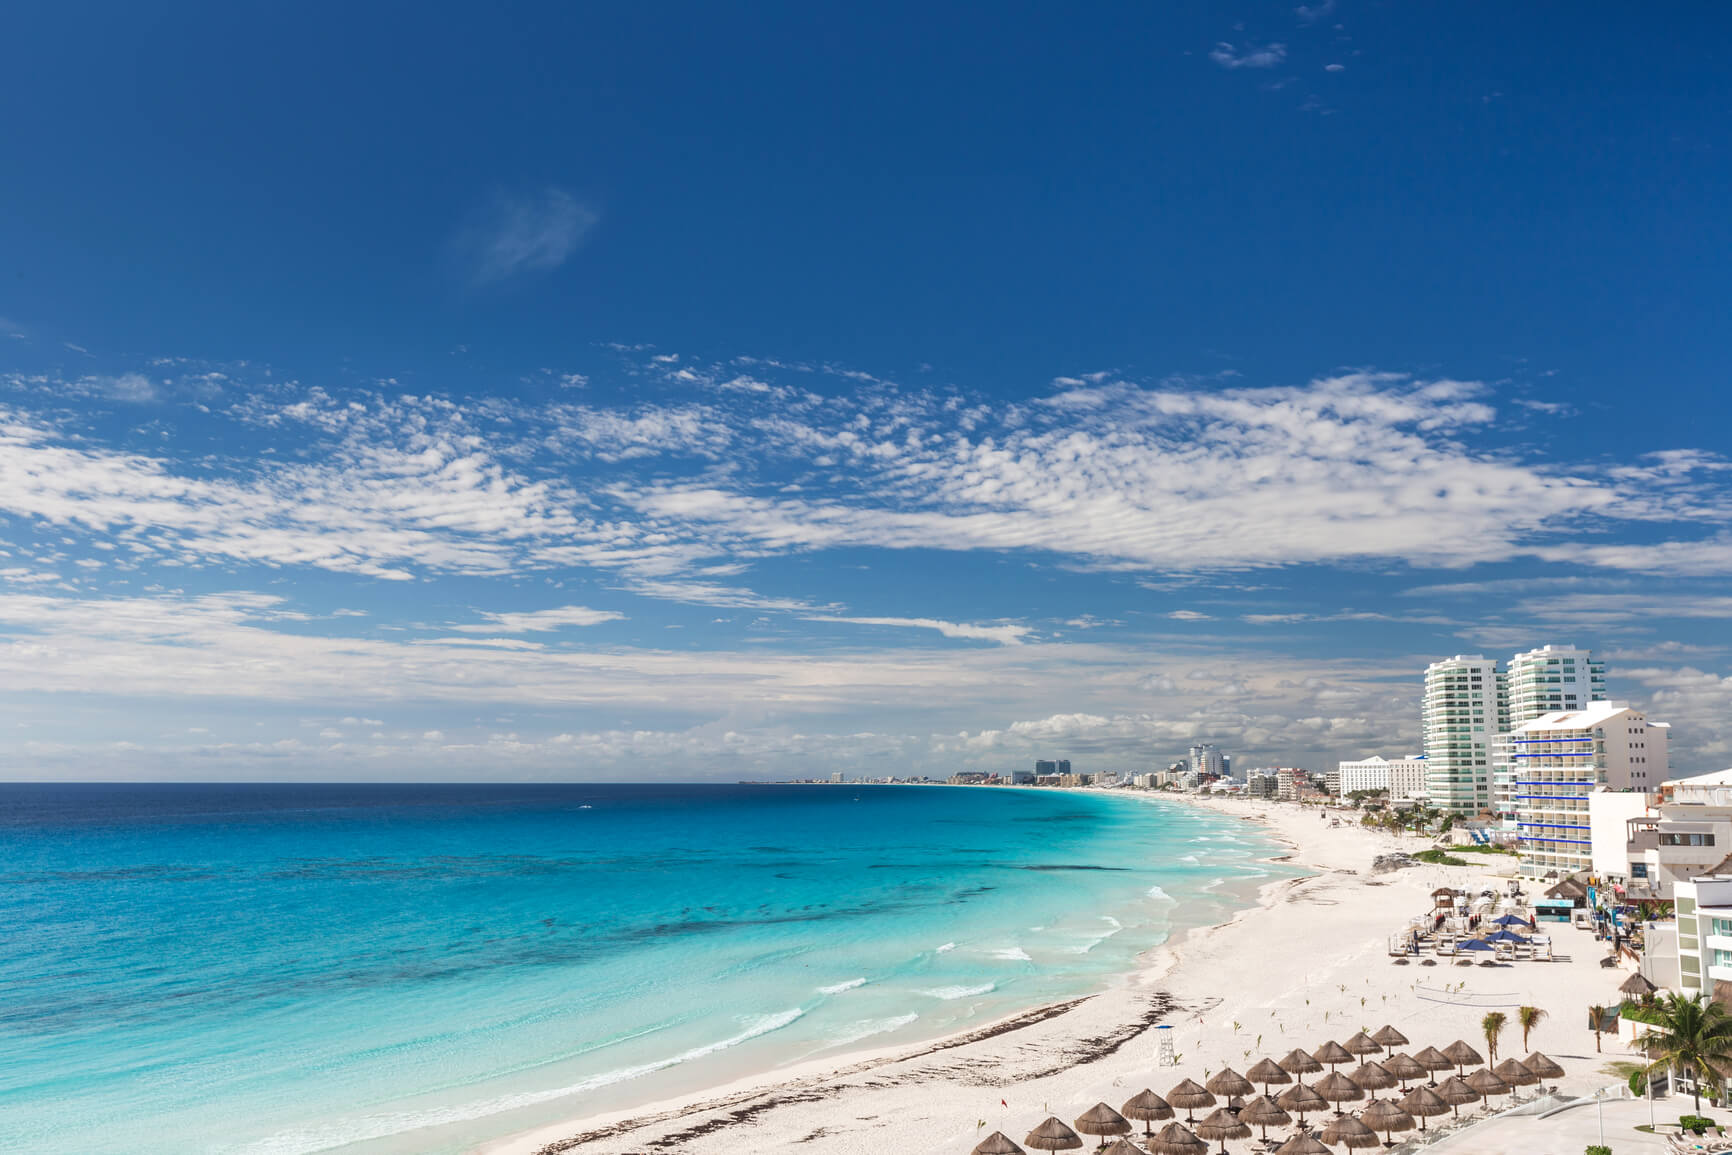 Non-stop from New York to Cancun, Mexico for only $189 roundtrip